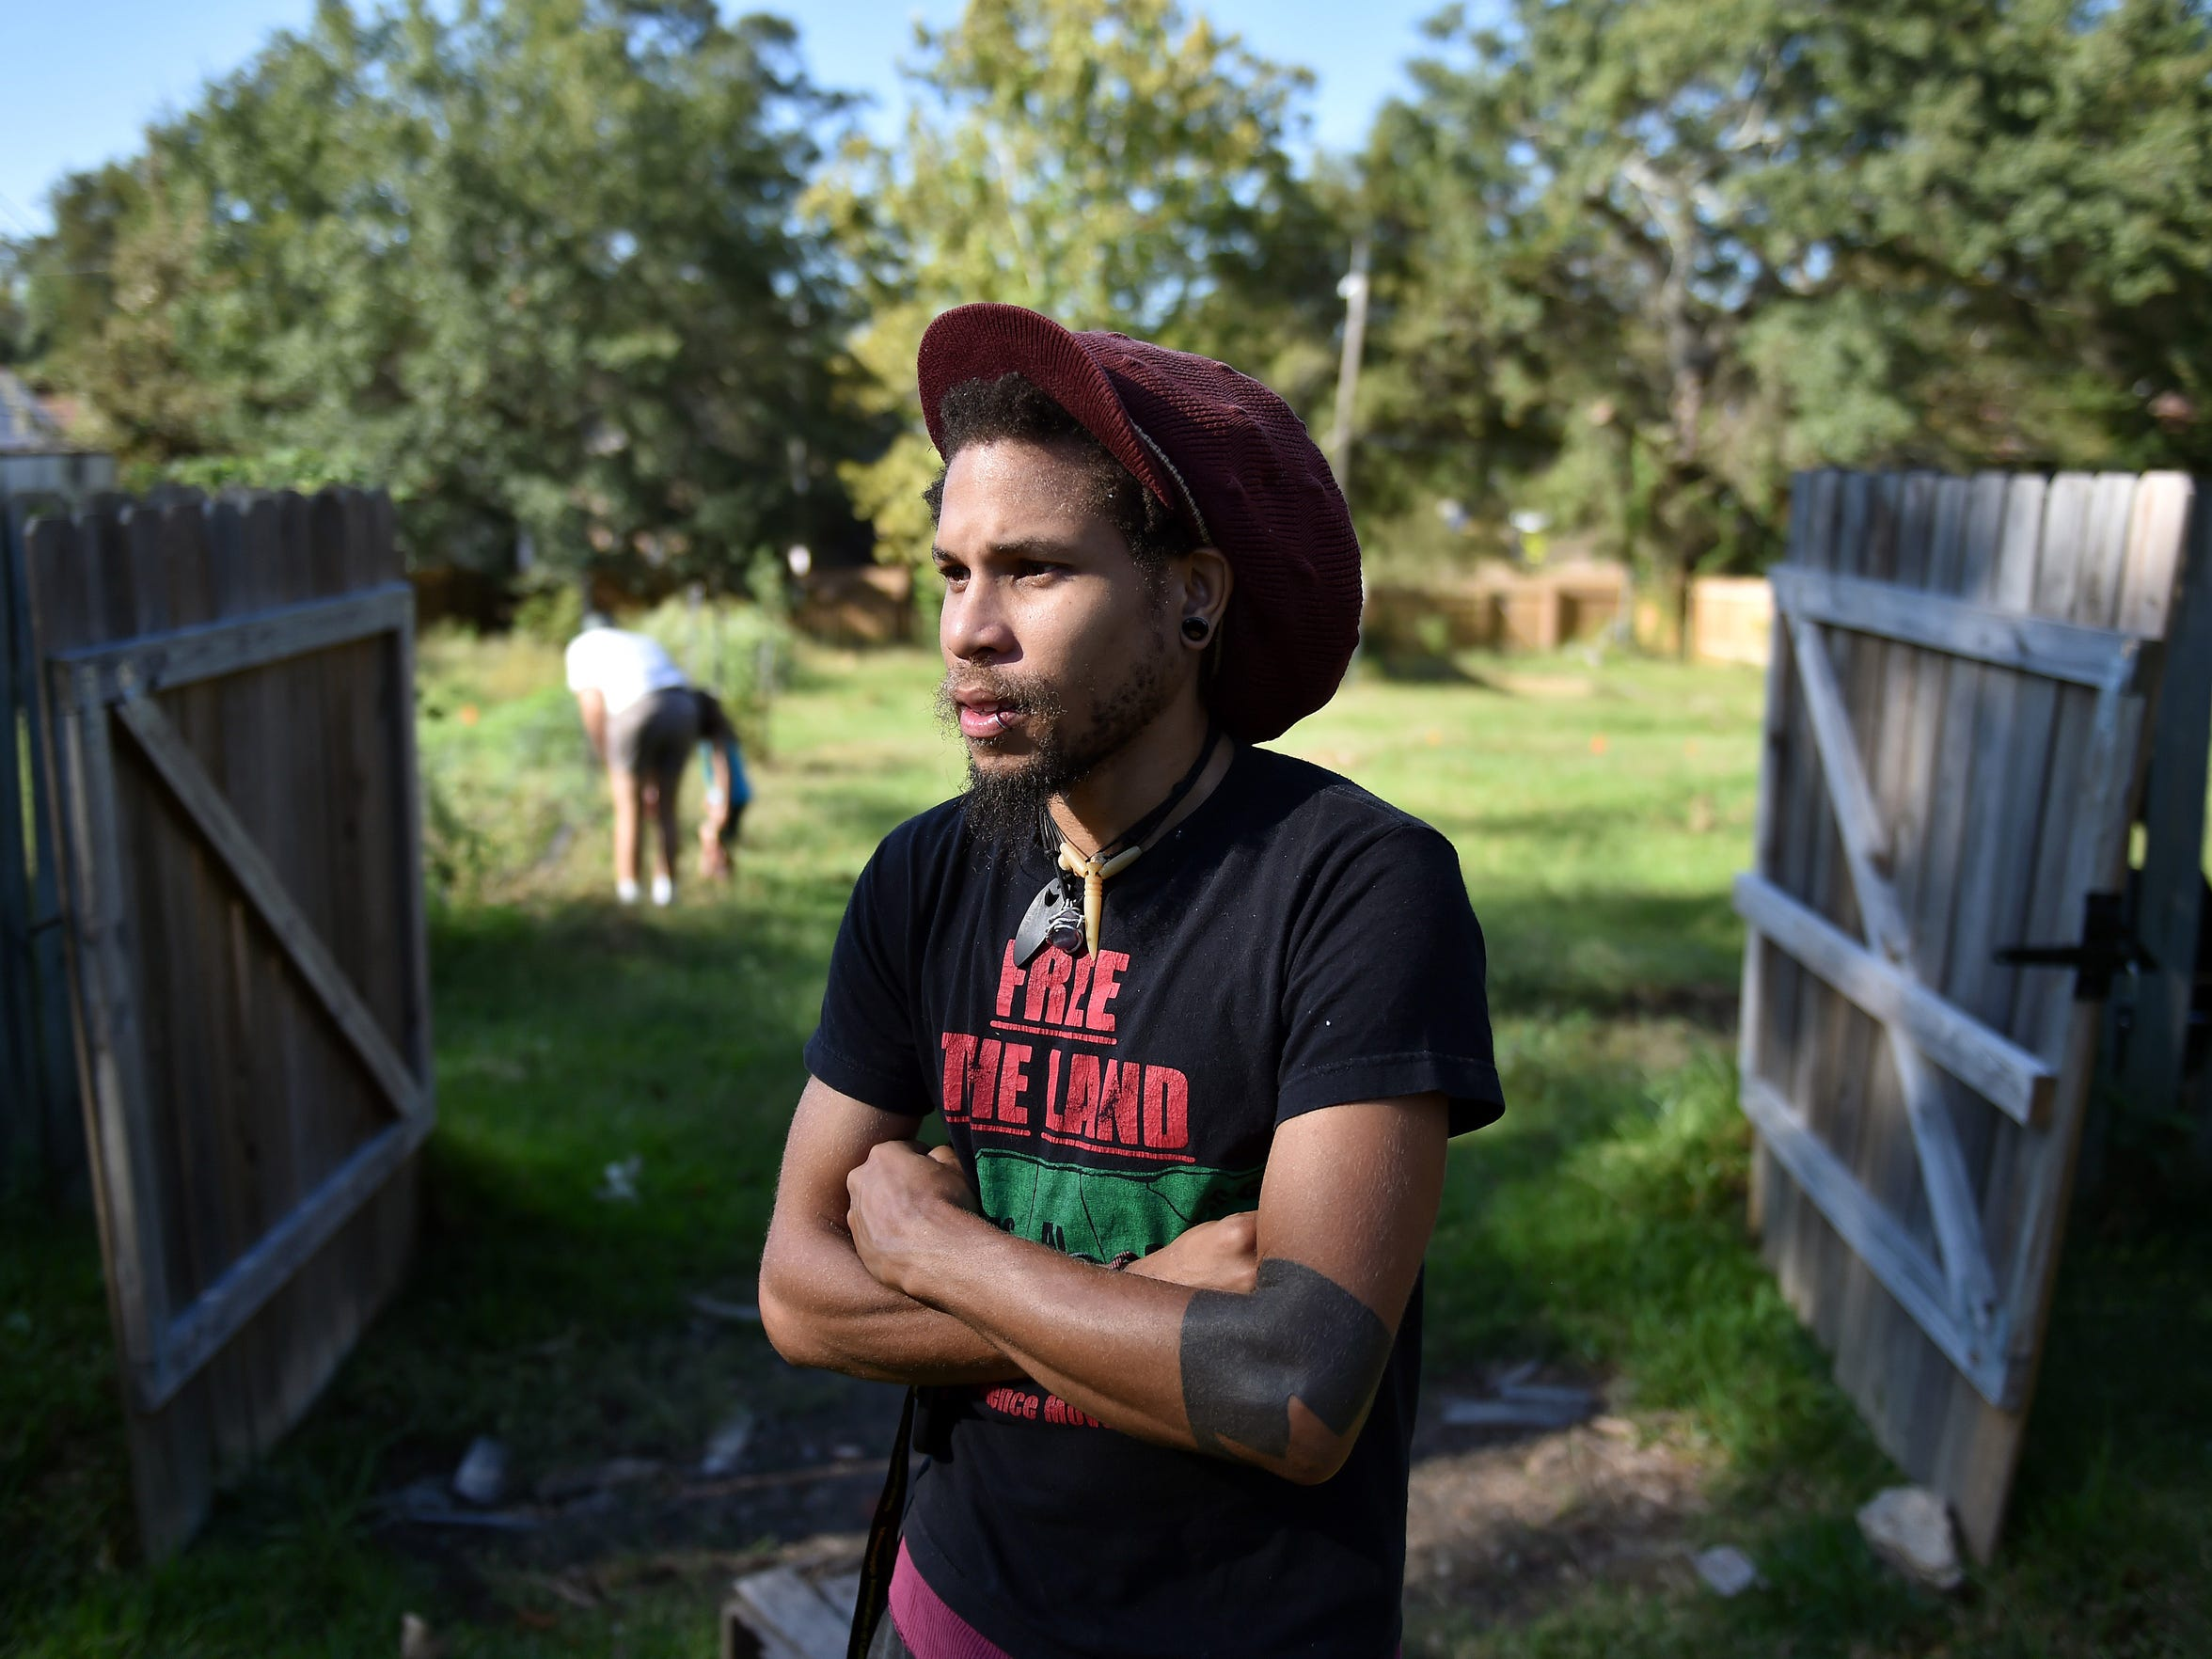 Jackson resident brandon king, who spells his name in all lowercase letters, stands in a garden behind Cooperation Jackson on Oct. 4, 2017, in Jackson.